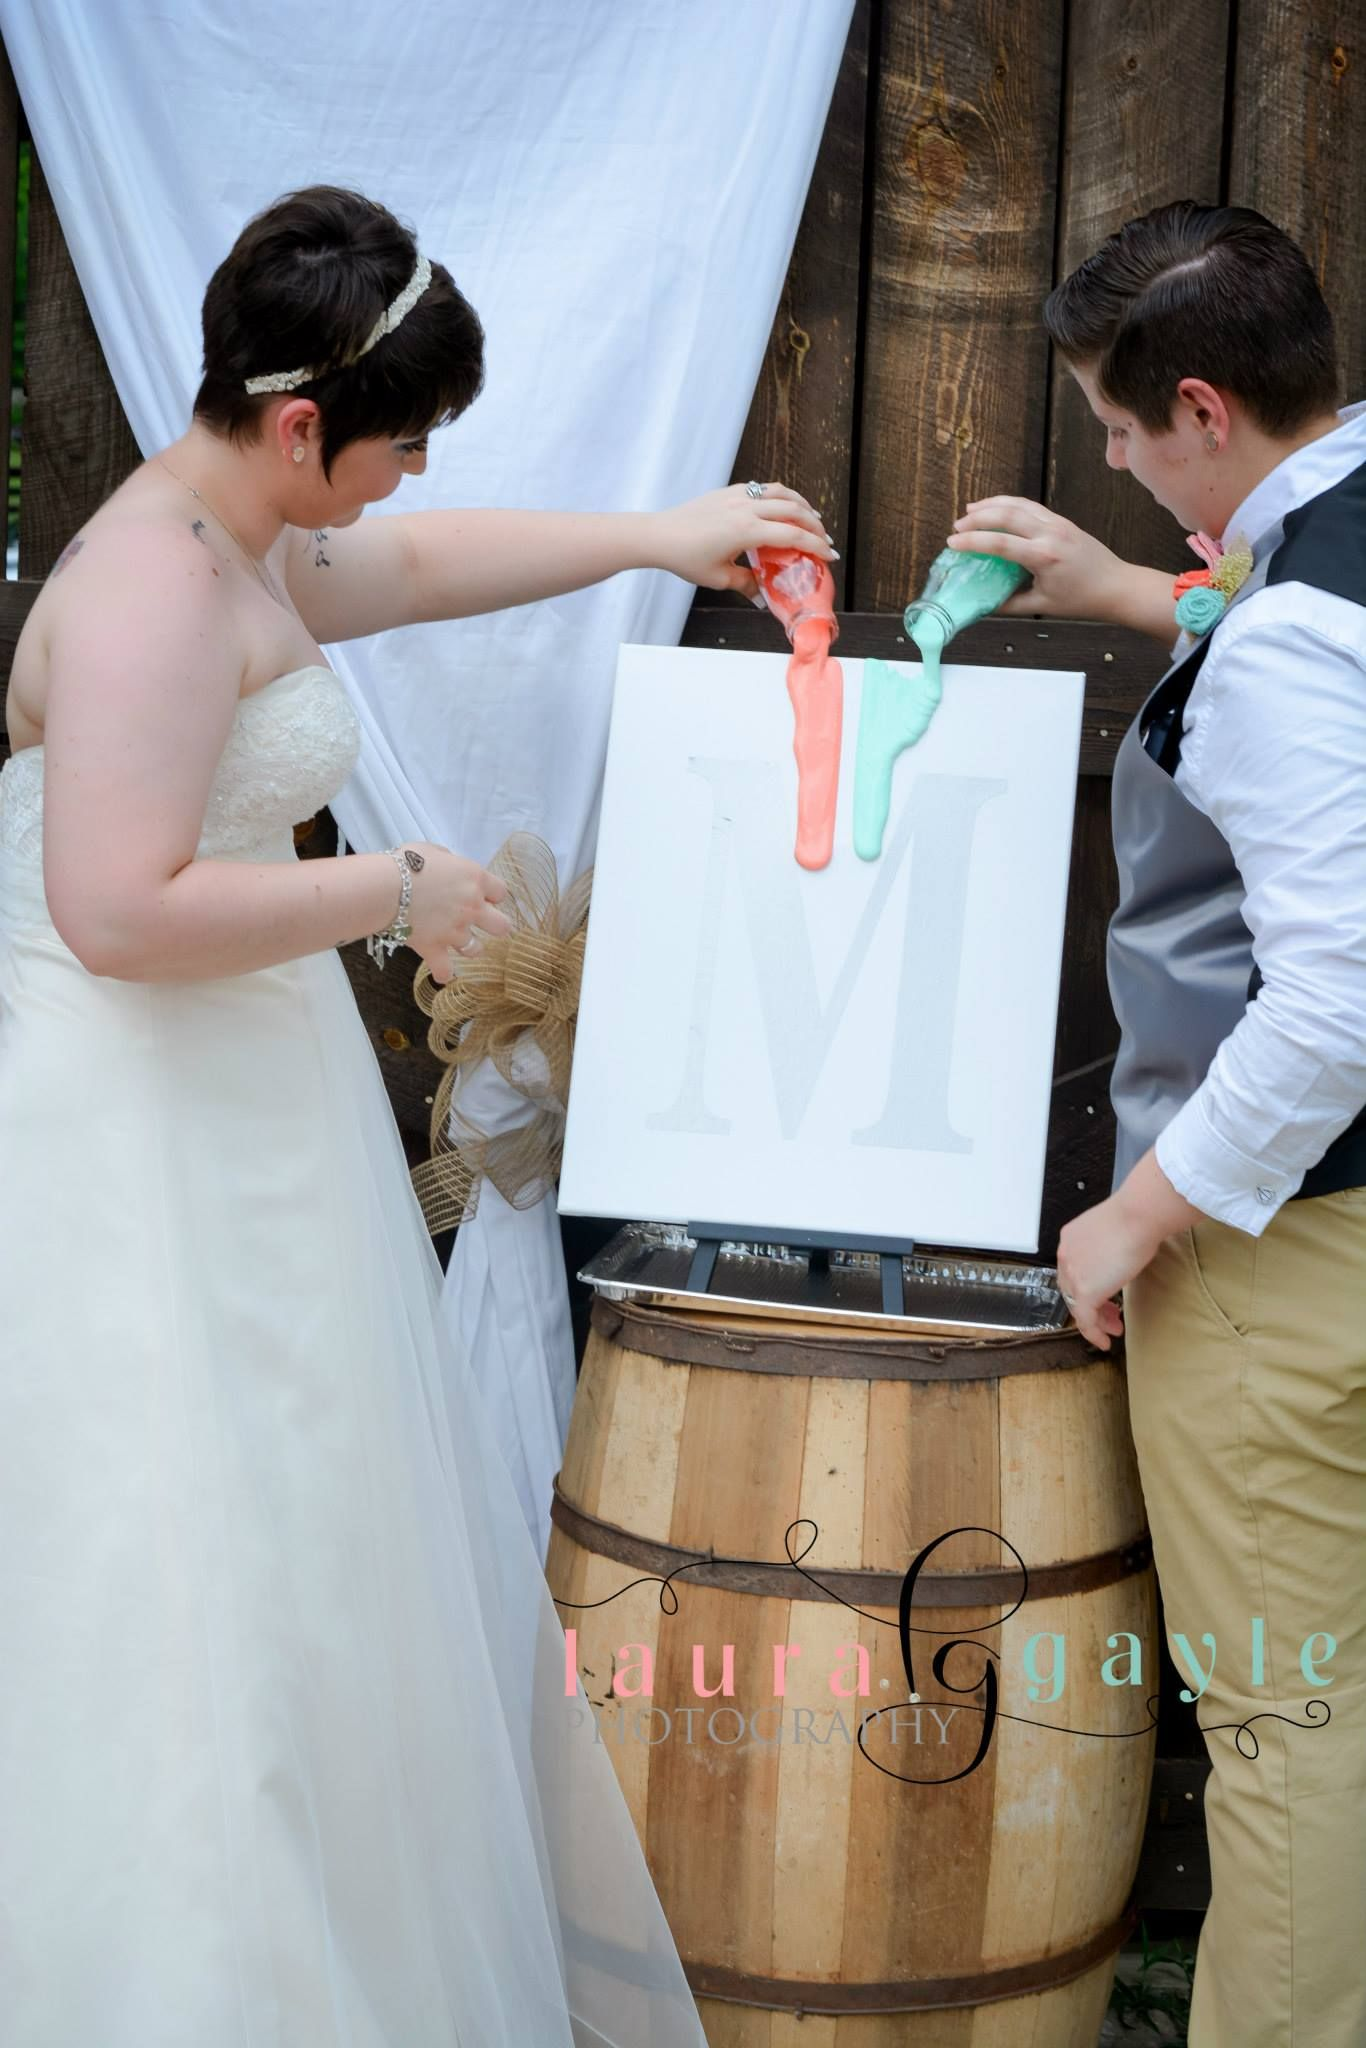 Unity Painting Allows The Couple To Make A Beautiful Piece